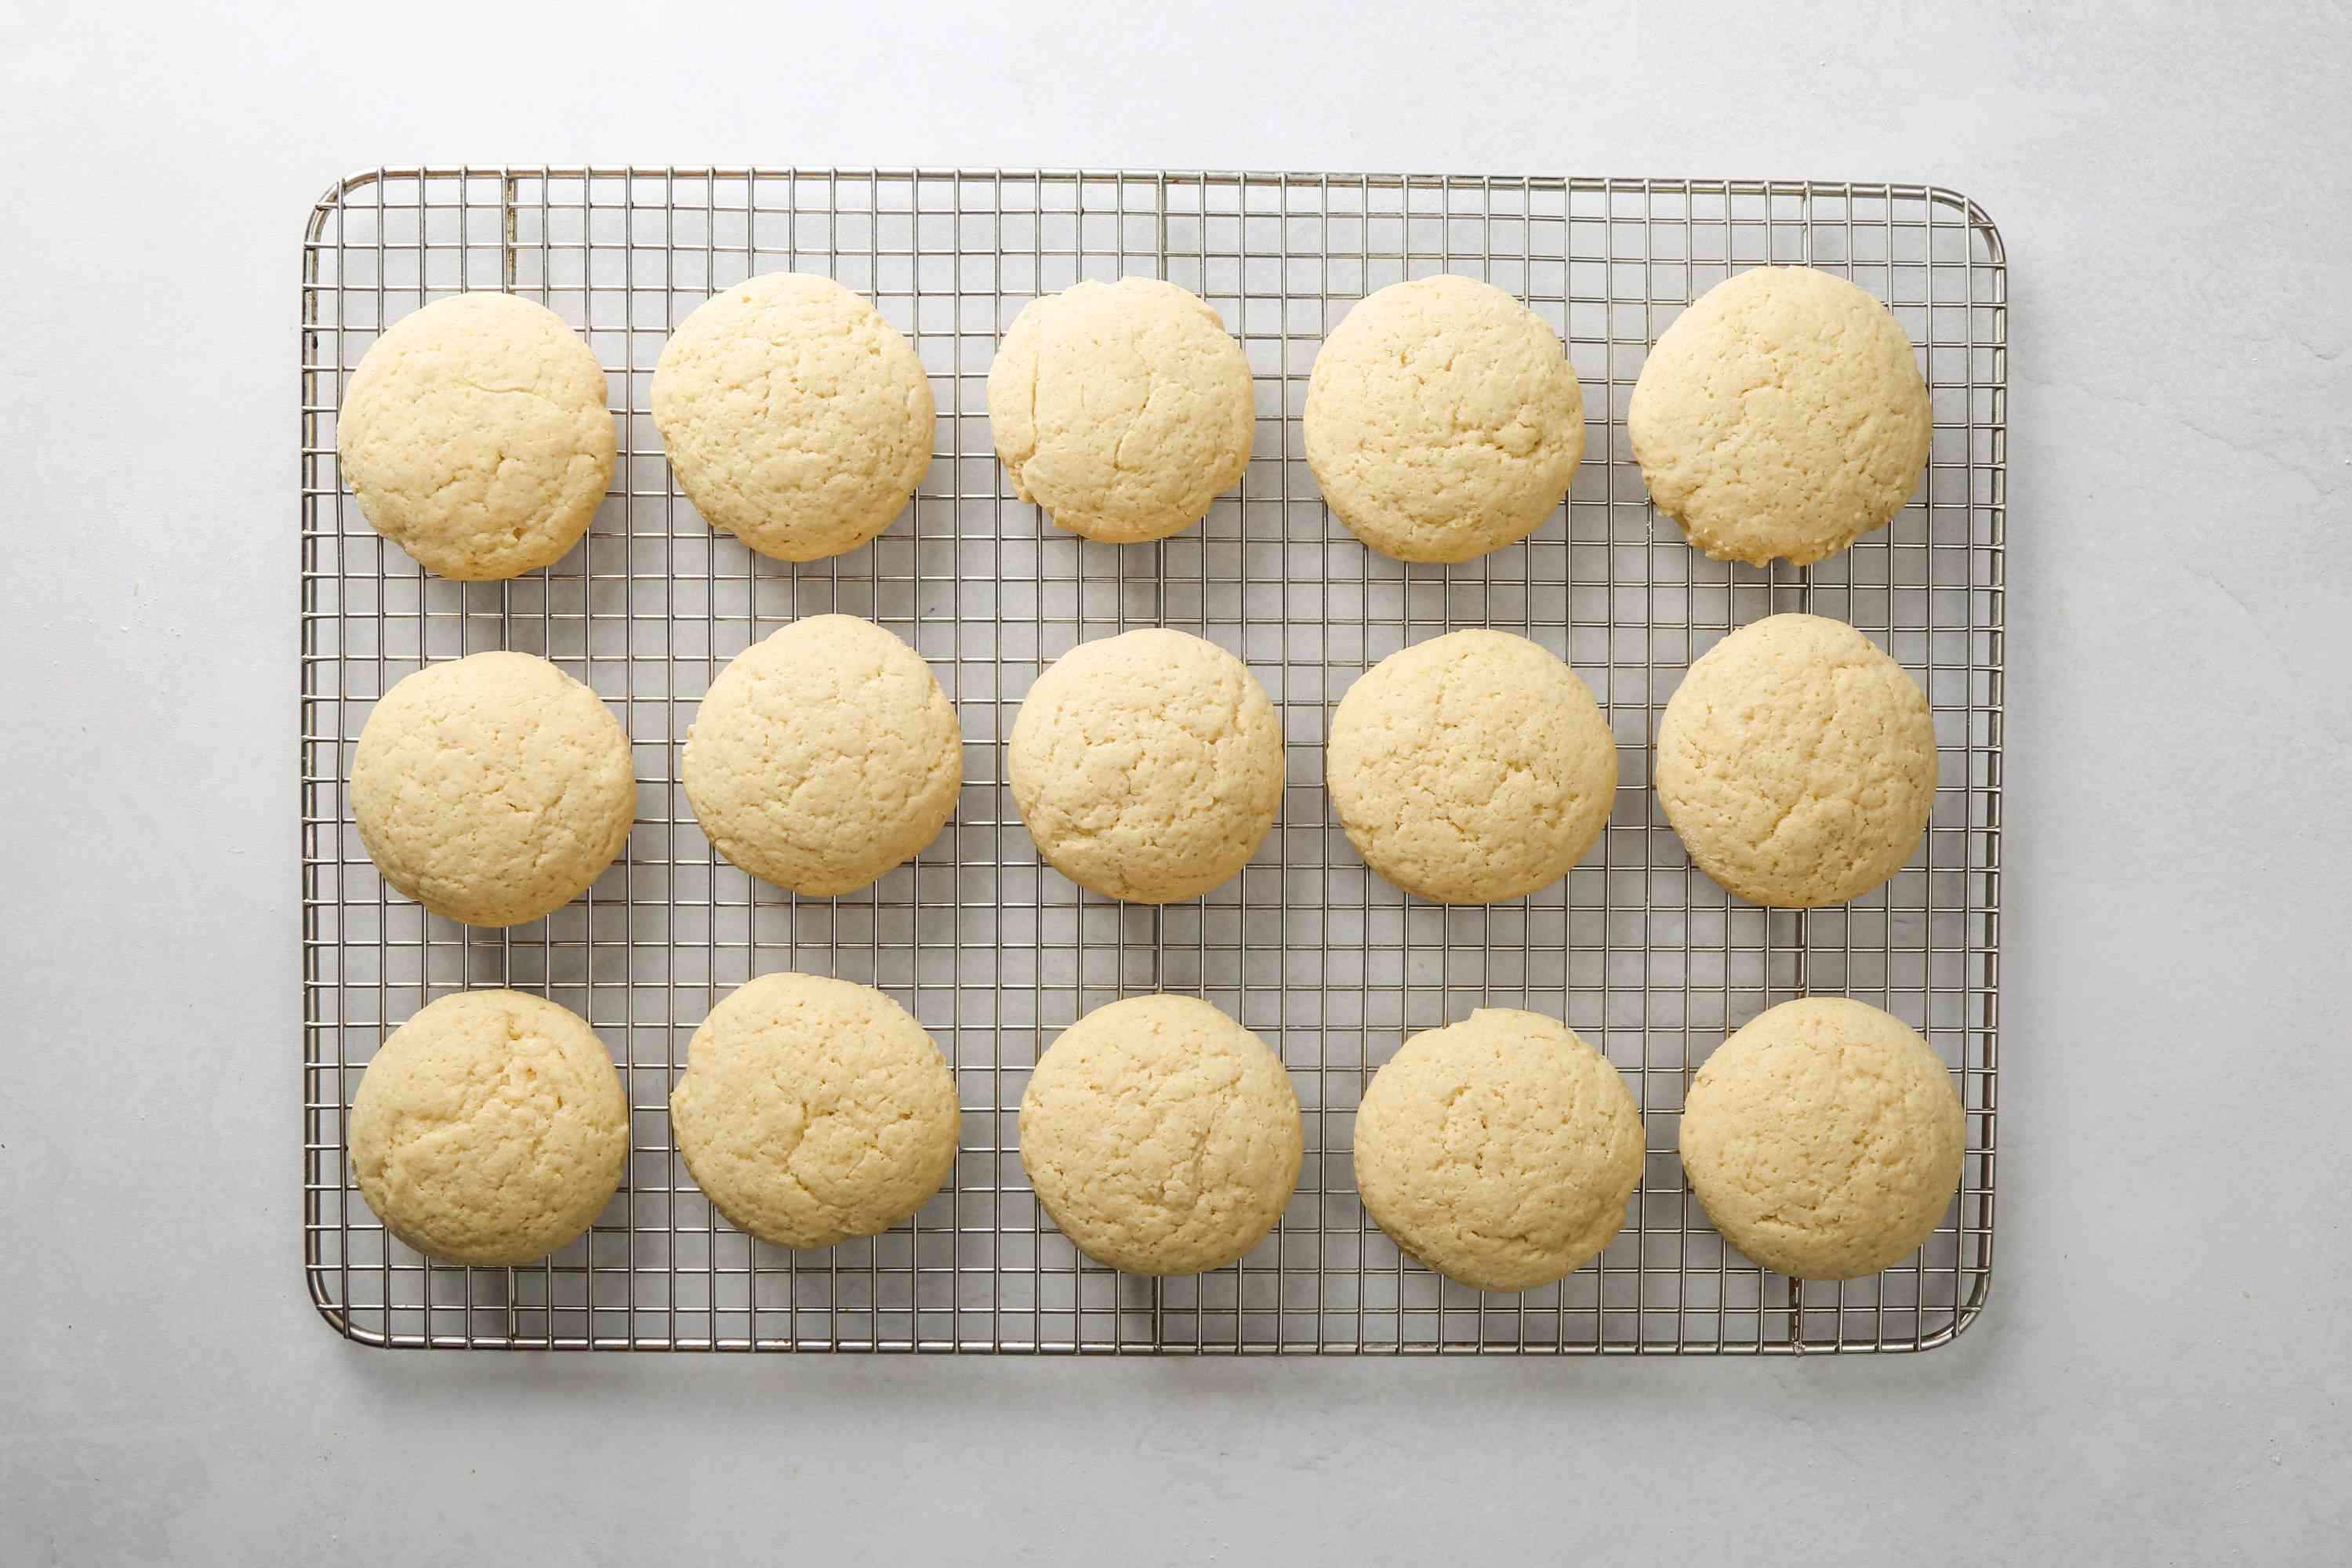 Lofthouse cookies cooling on a wire rack